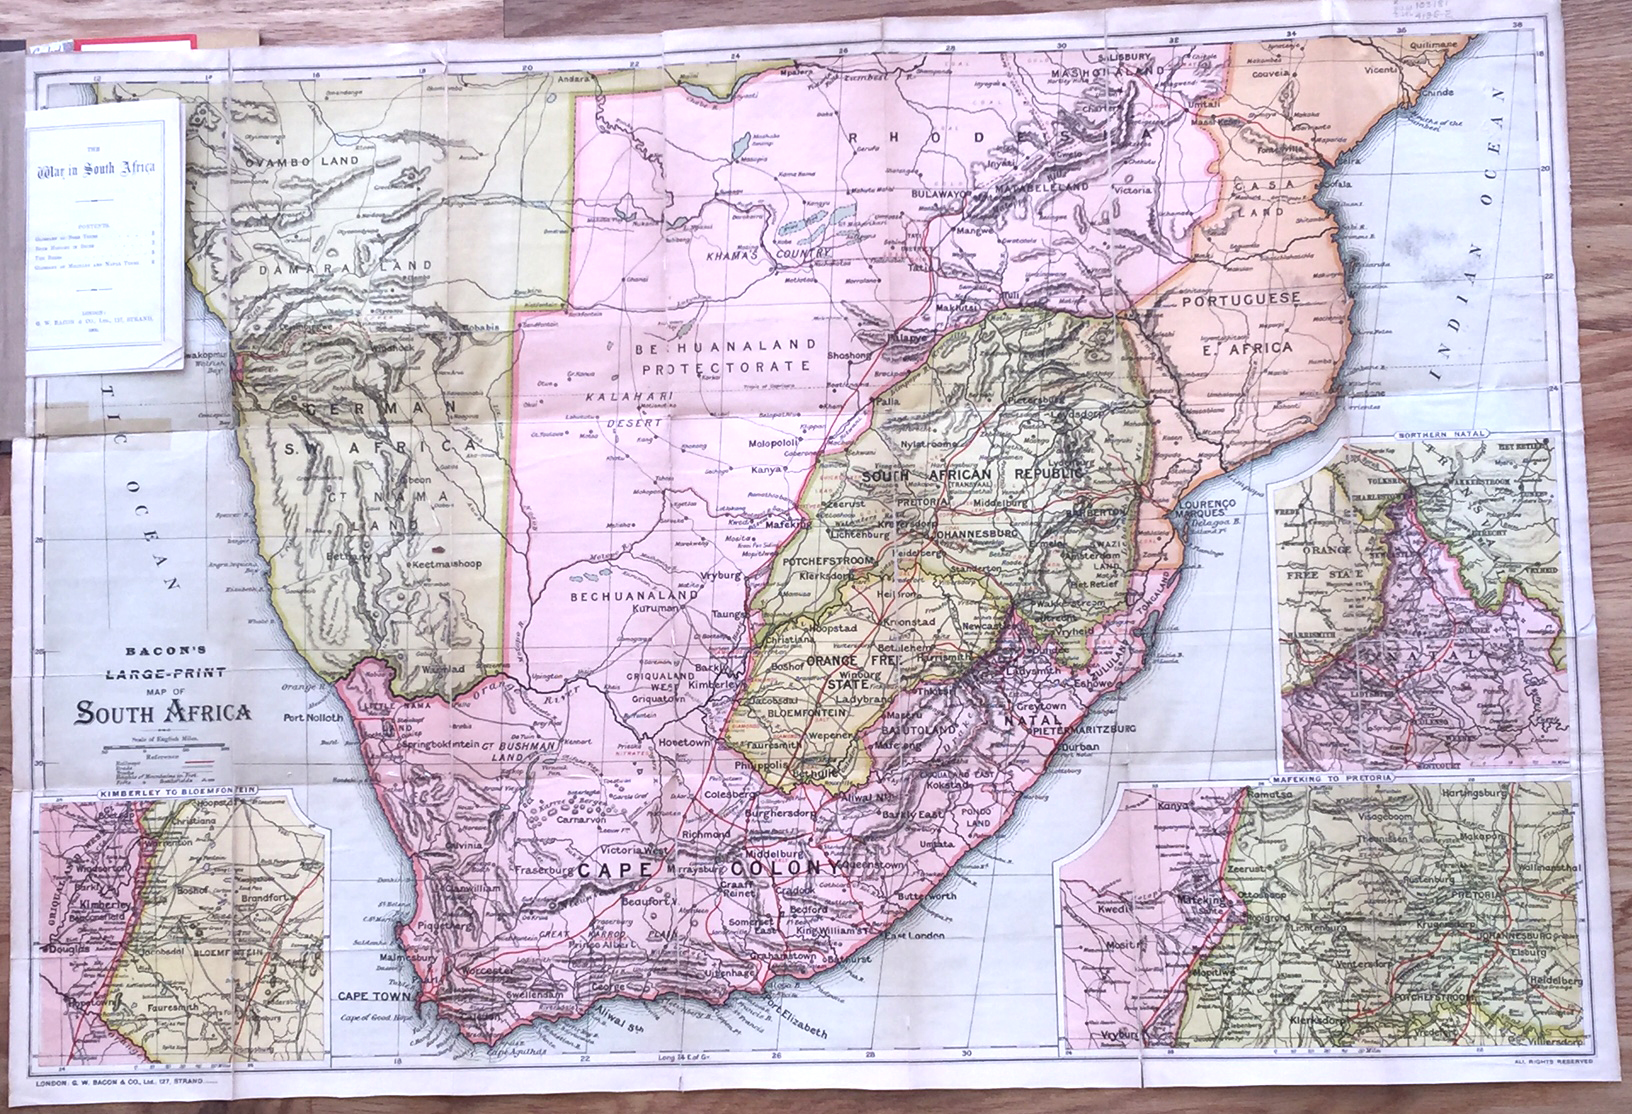 The Transvaal War Bacons Large Print Map of South Africa 1900 Bacon